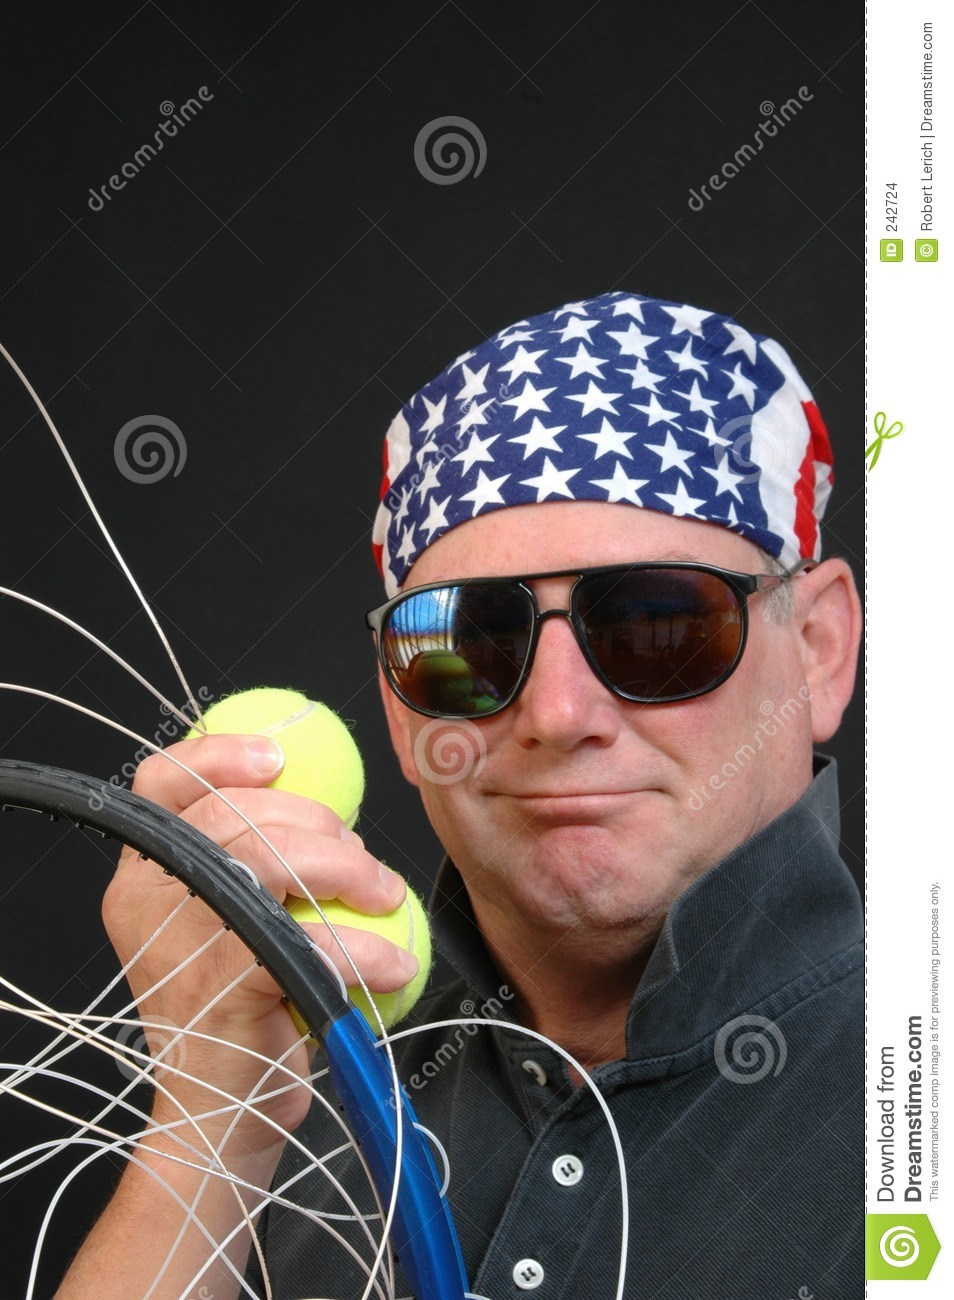 Tennis Player With Racket Loose Strings Stock Photo - Image of power